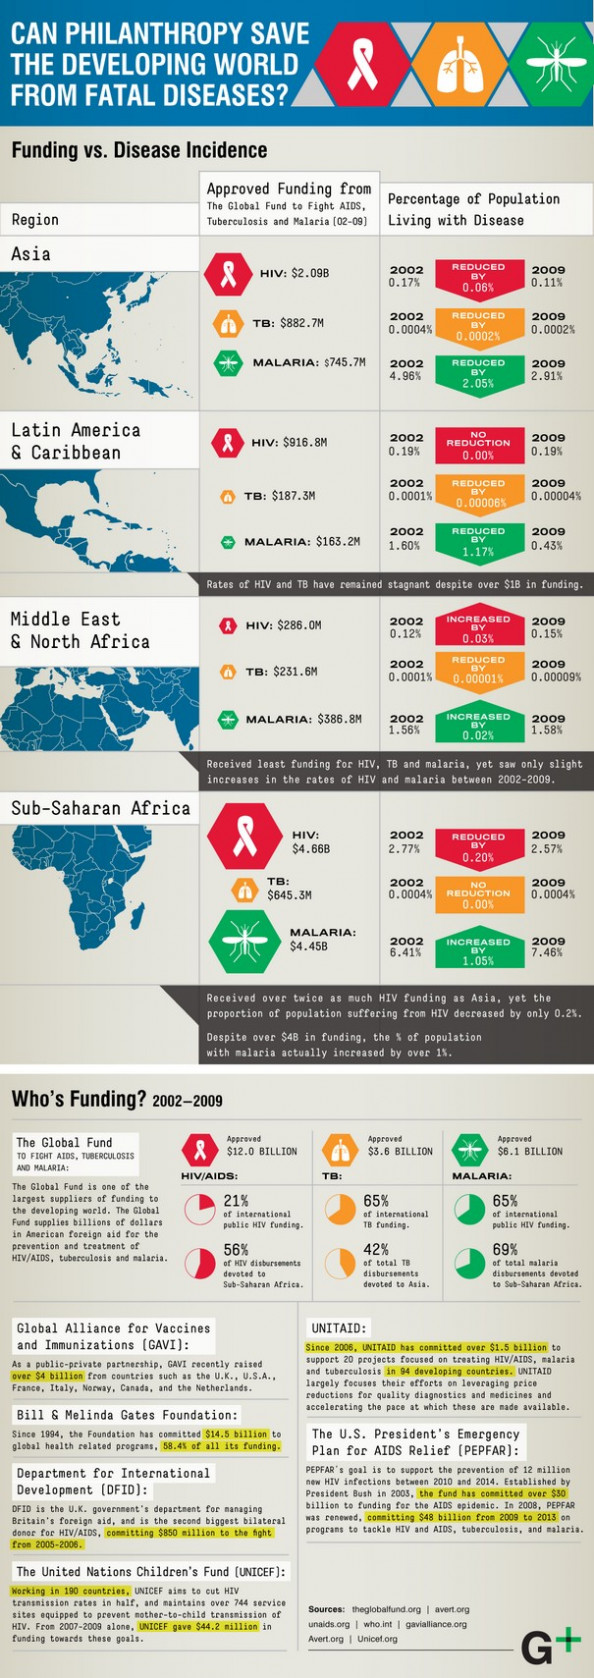 Can Philanthropy Save The Developing World From Fatal Diseases? Infographic